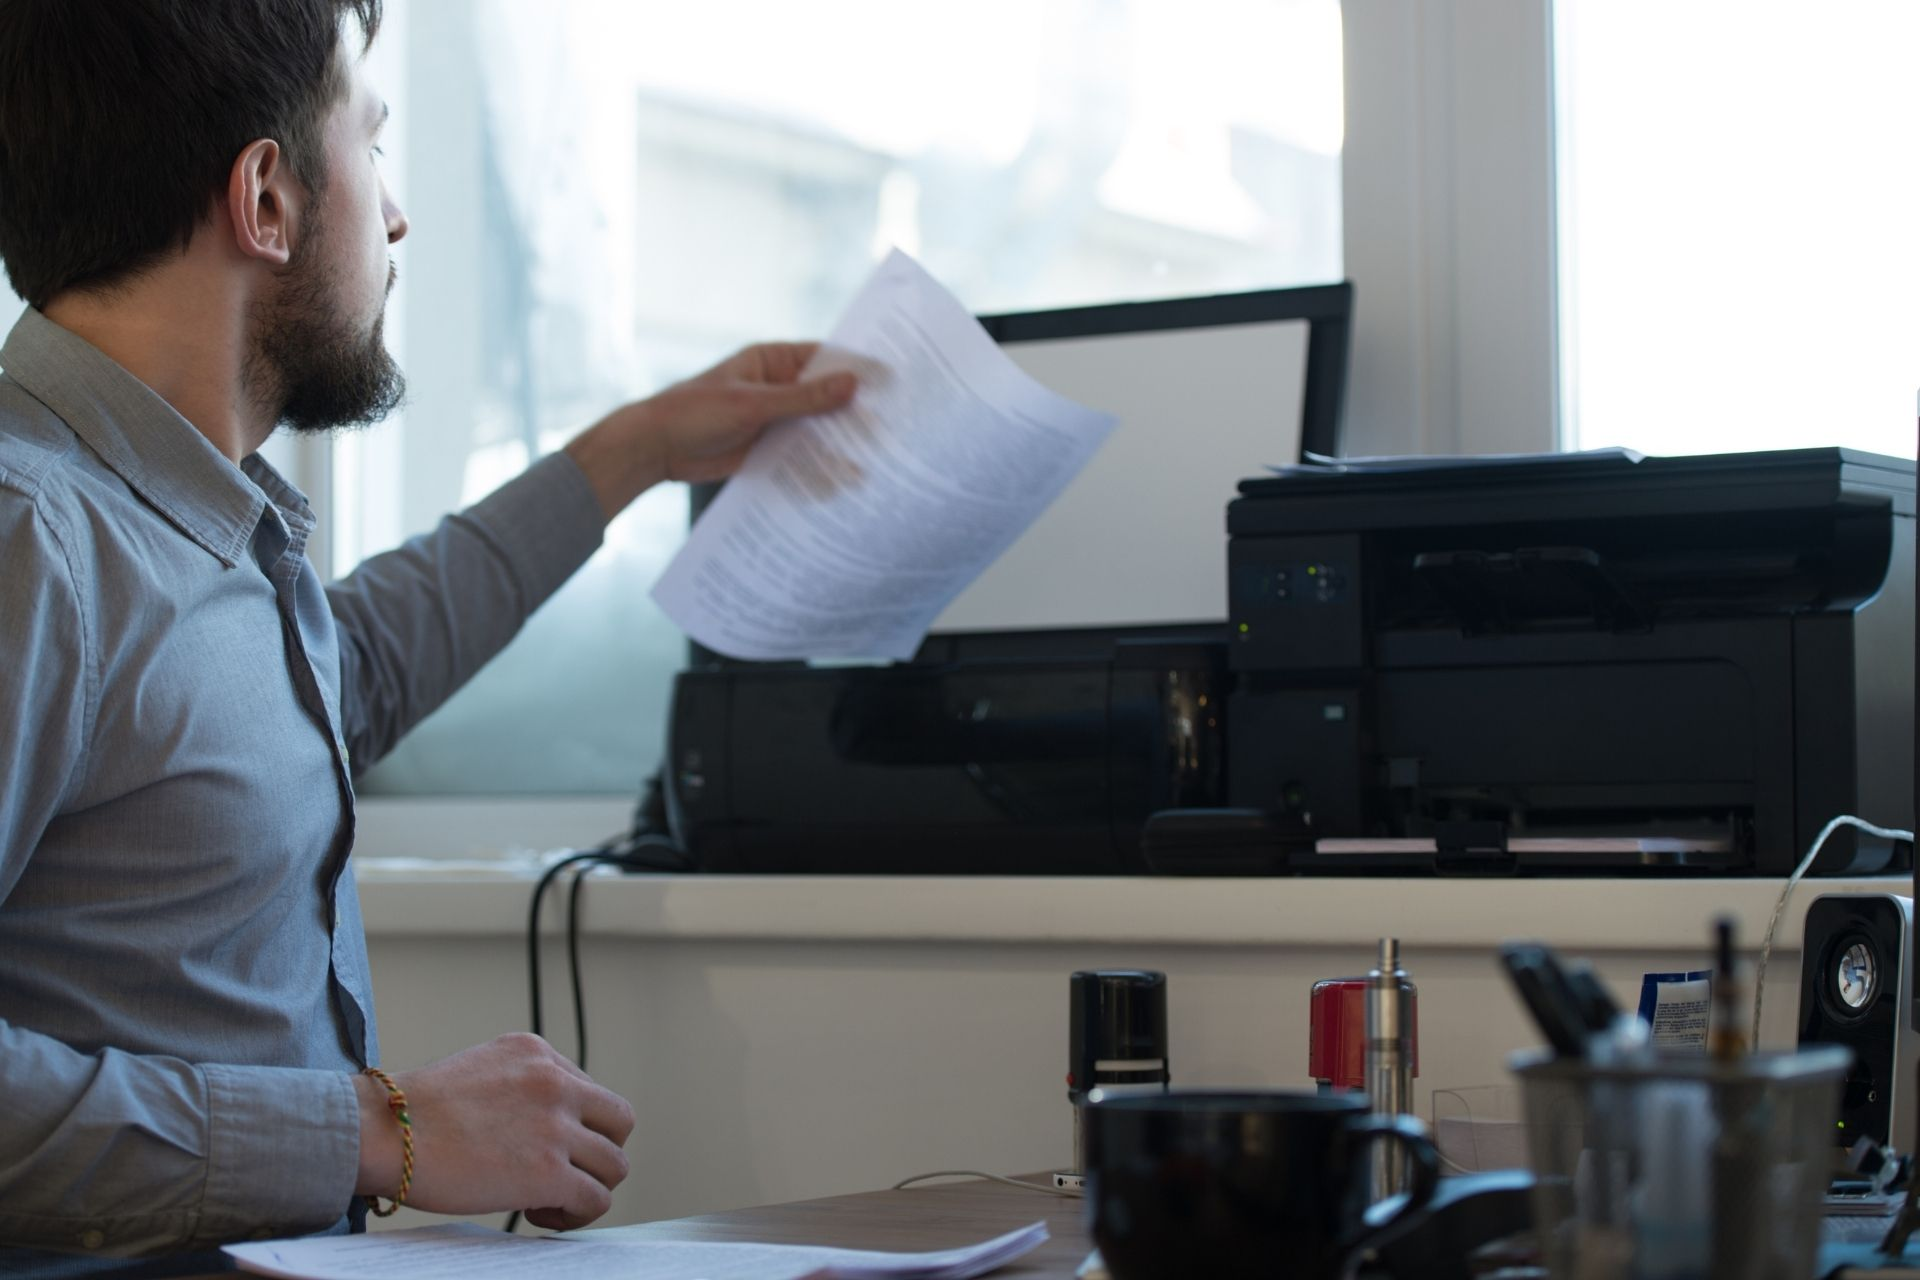 A person using a multifunction printer